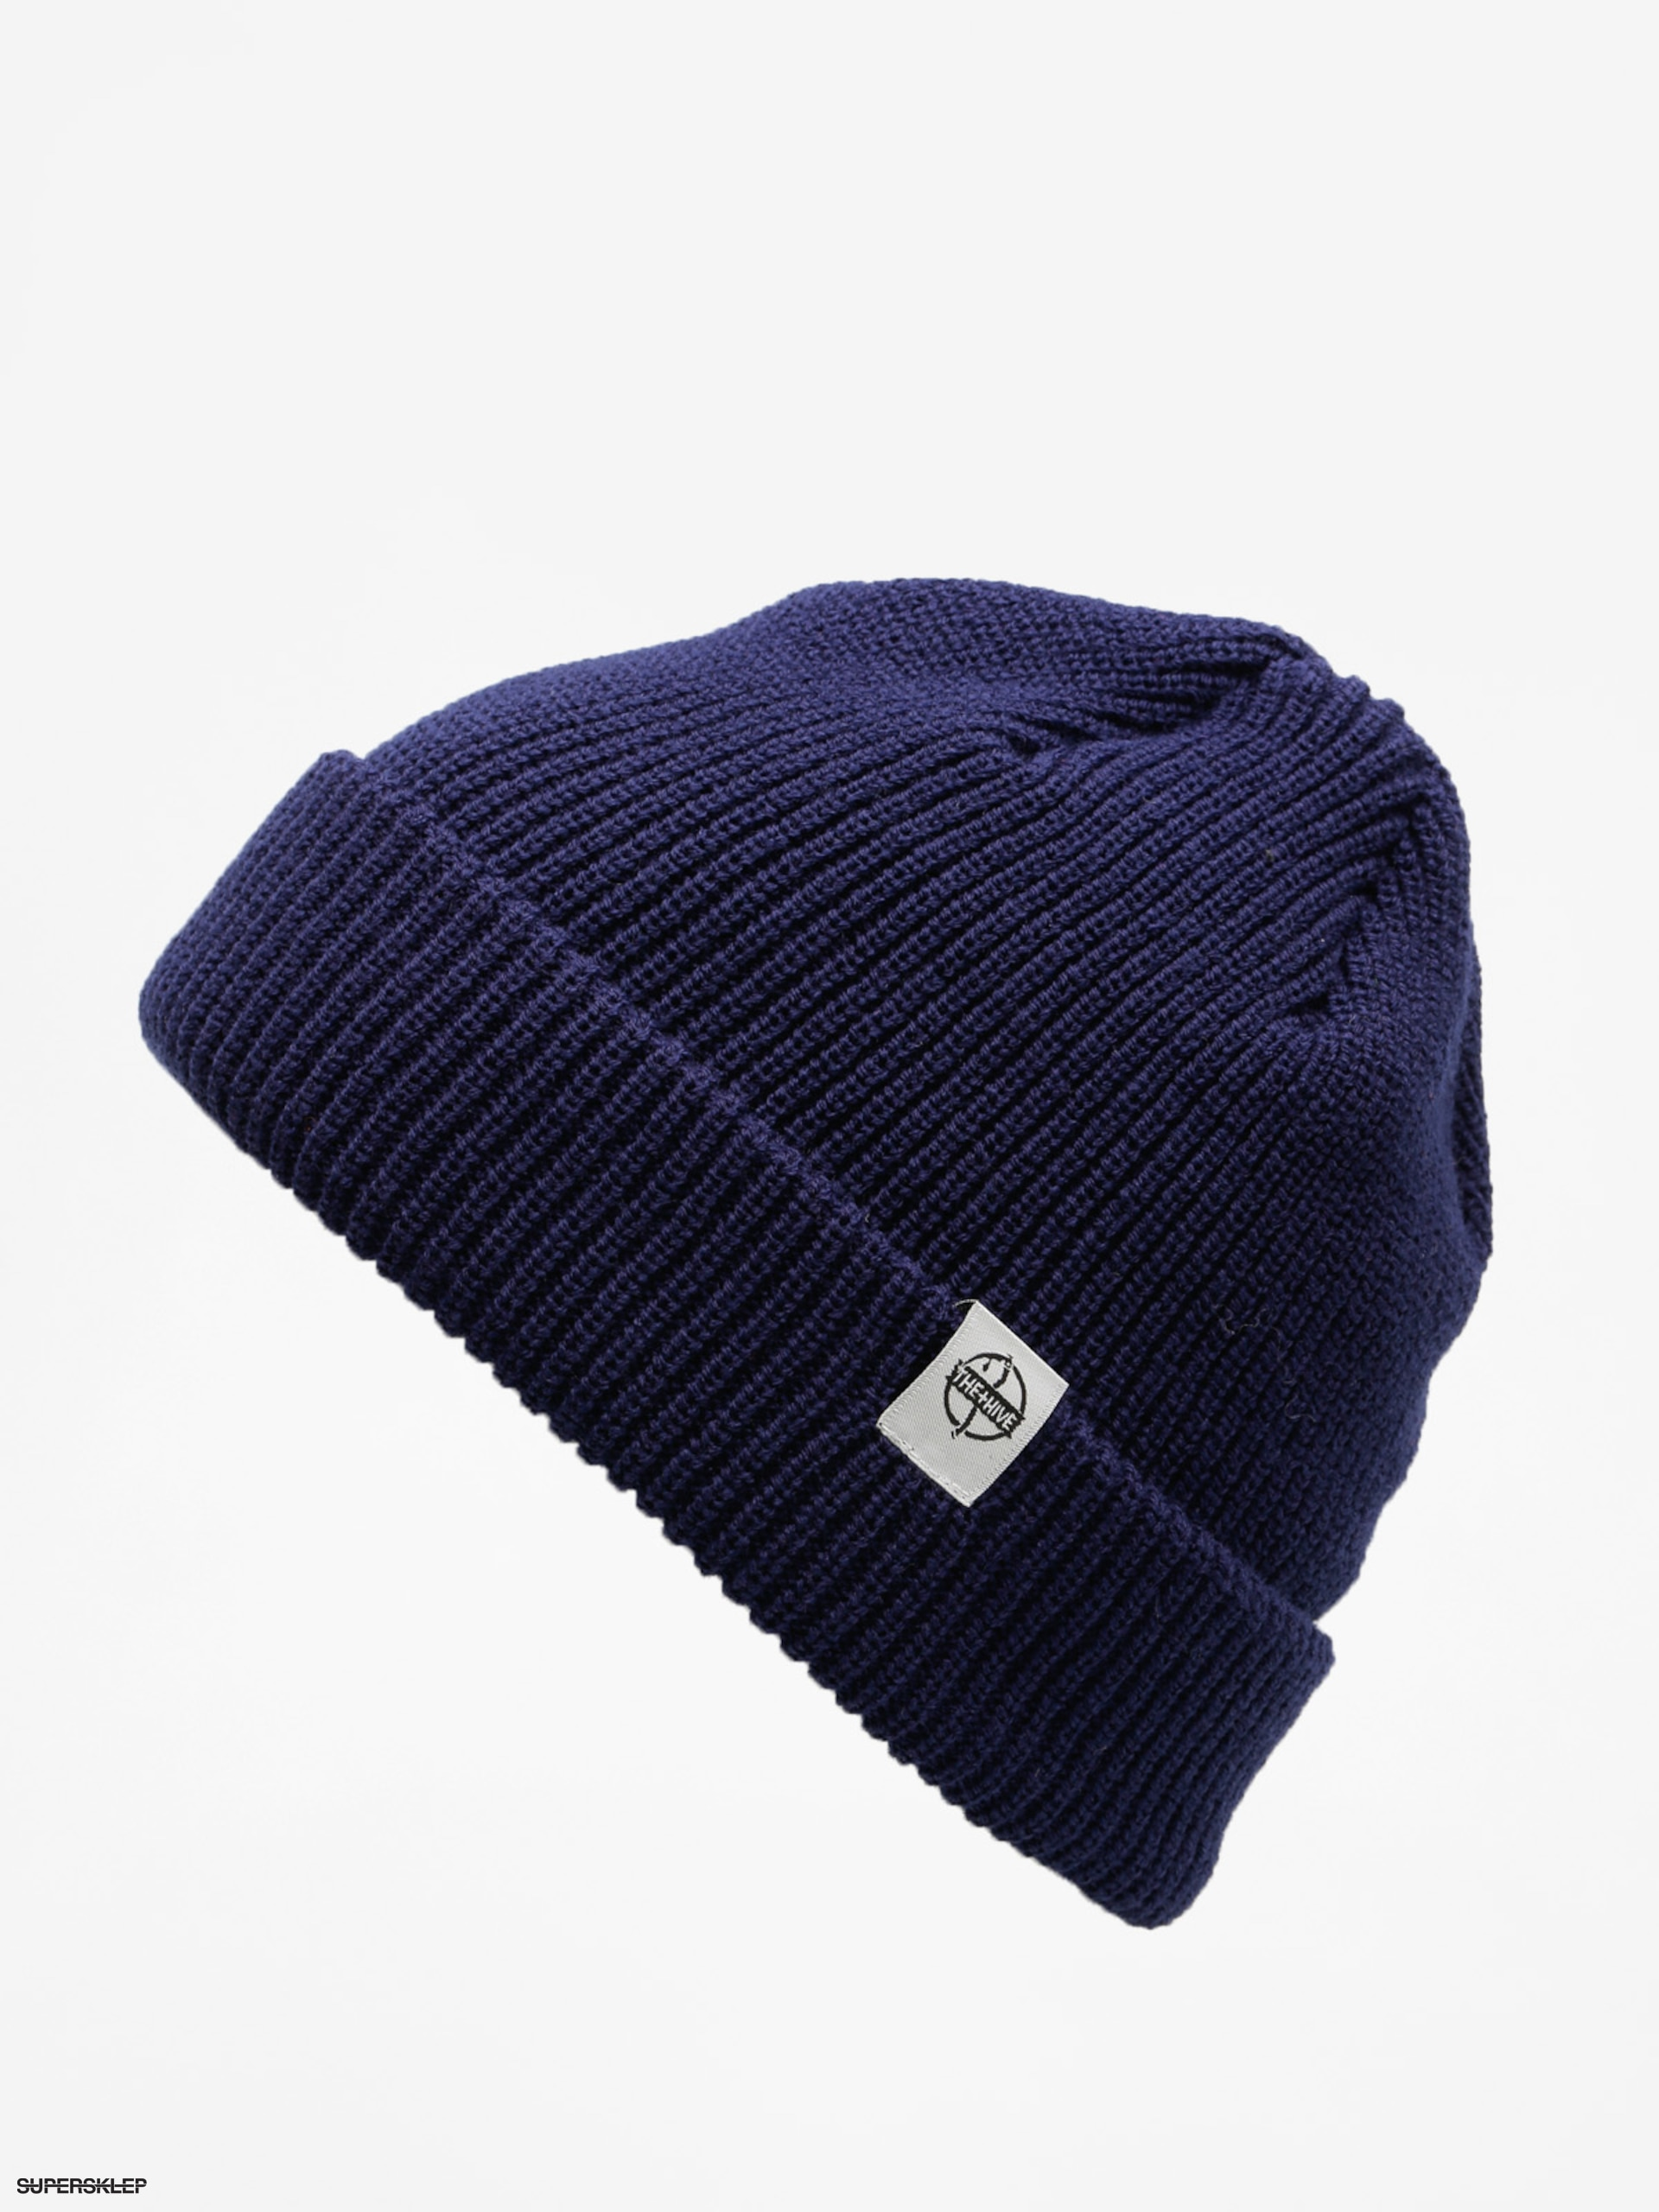 Čepice The Hive Fisherman Beanie